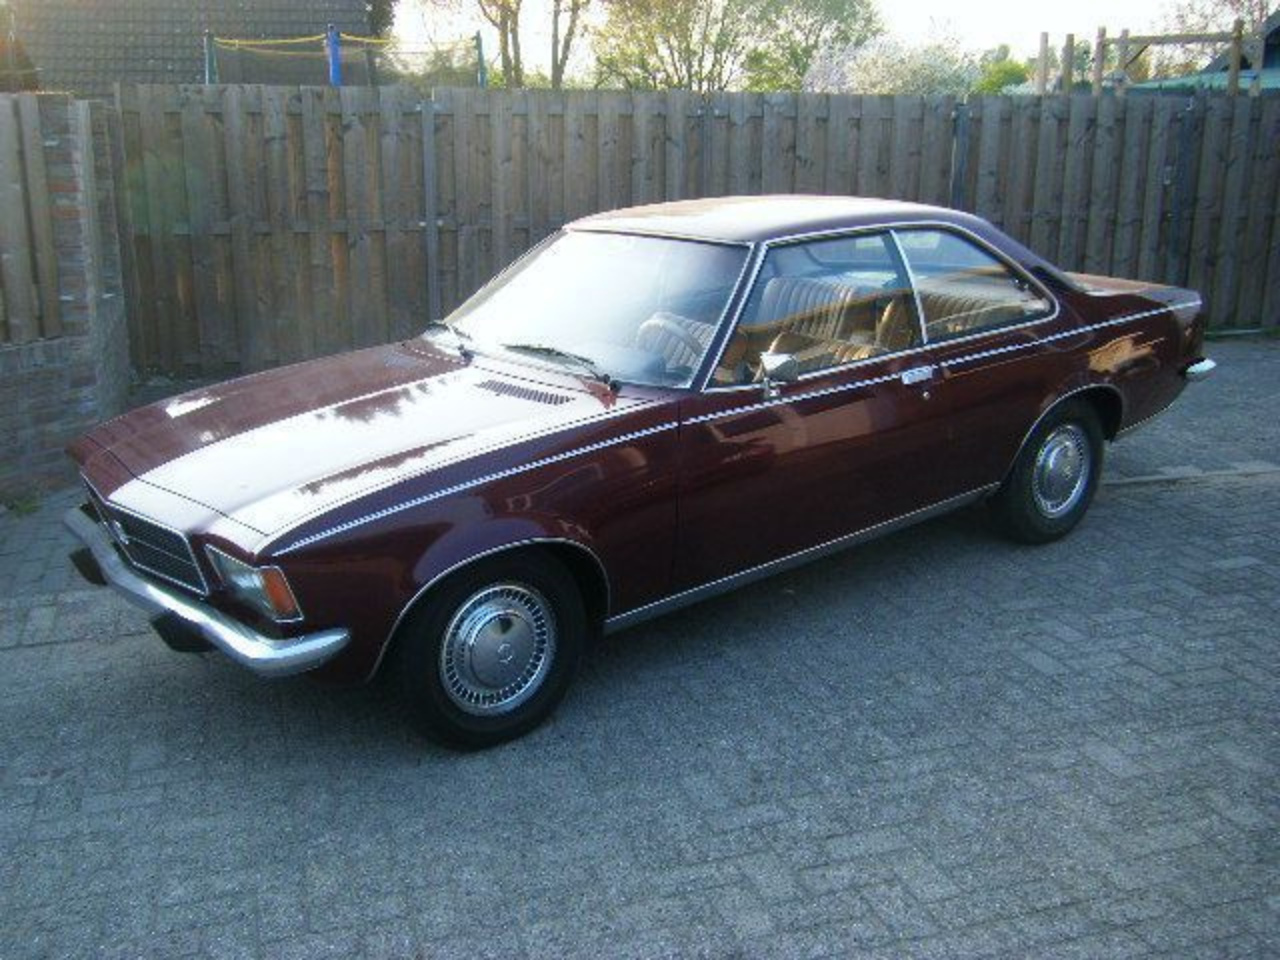 1975 Opel Rekord - 1700 COUPE | Flickr - Photo Sharing!